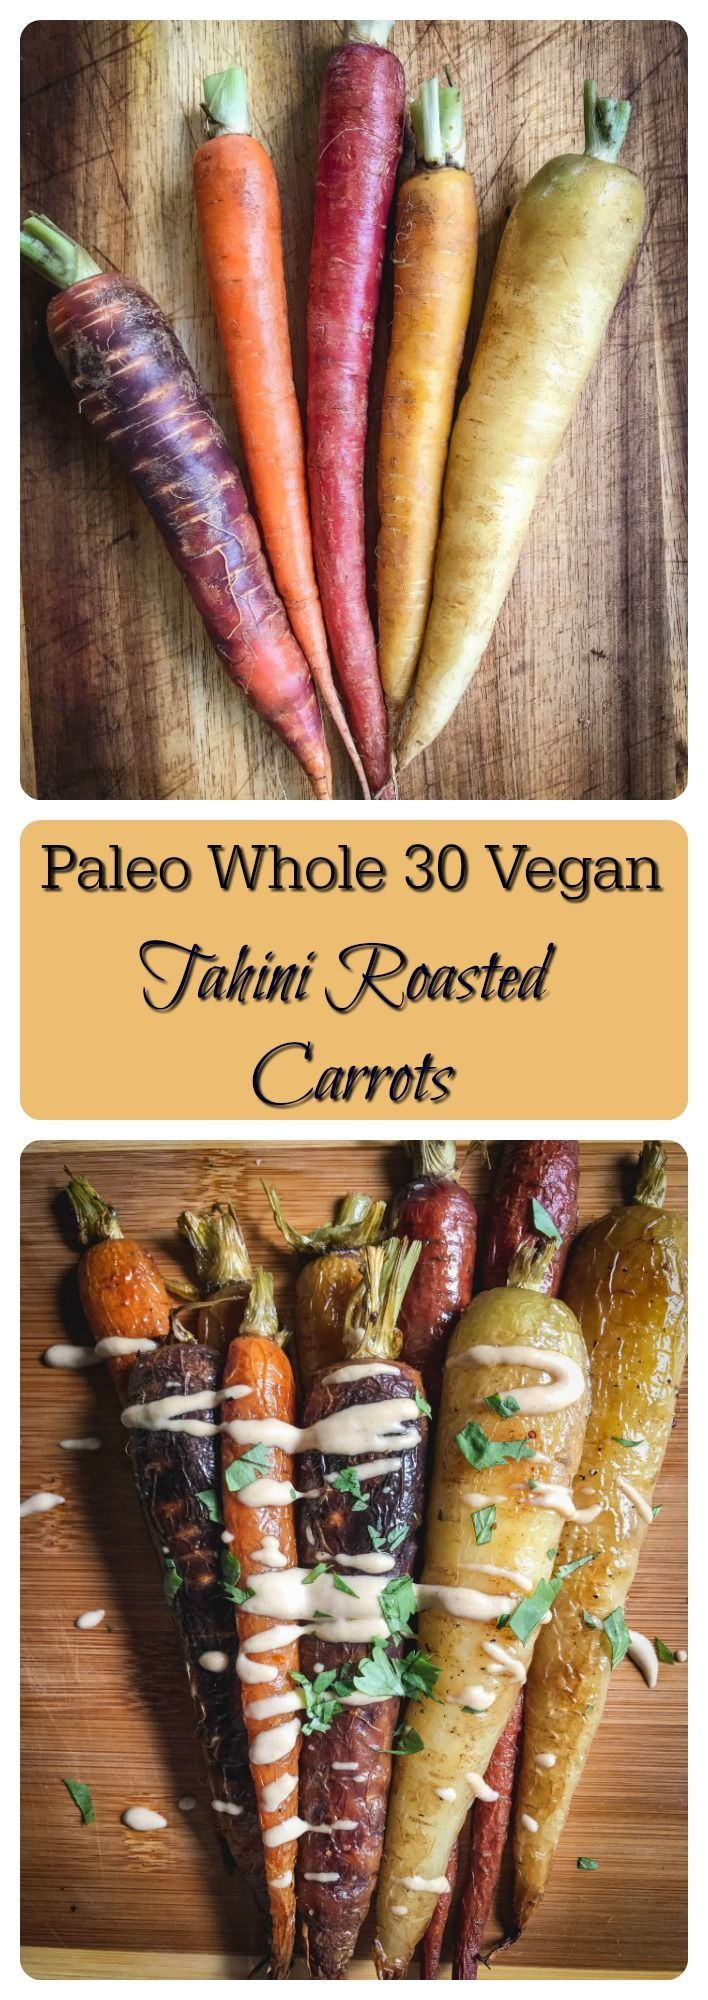 These roasted carrots with tahini dressing are a perfect side for any meal or can be eaten on their own (yup, done it). Simple to make with only a few ingredients. They're paleo, whole 30 and vegan. #vegan, #paleo, #whole30